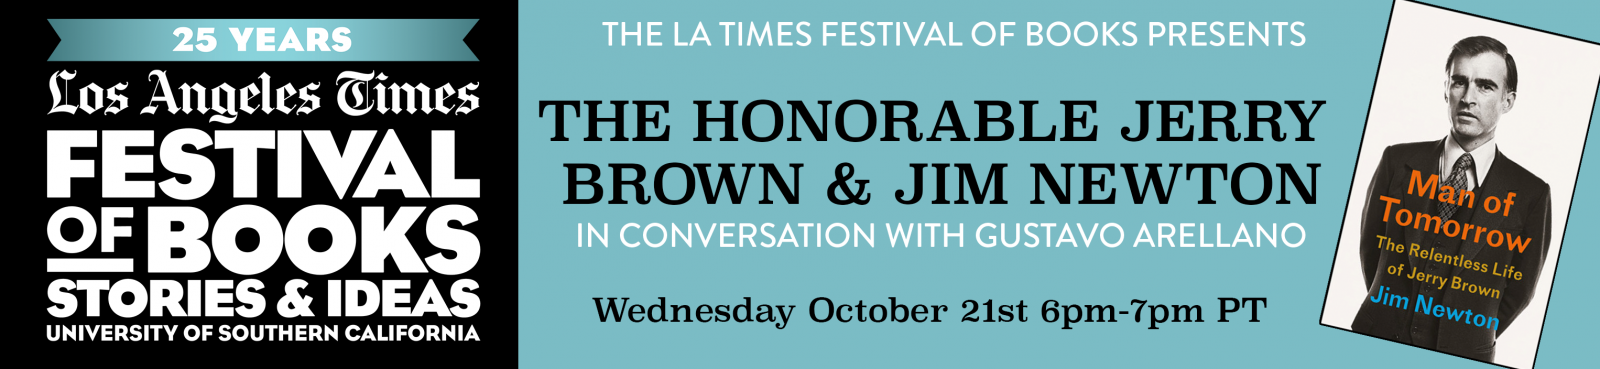 "The L.A. Times Festival of Books presents The Honorable Jerry Brown and Jim Newton, Author of ""Man of Tomorrow,"" in Conversation with Gustavo Arellano on Wednesday October 21st from 6pm-7pm PT"